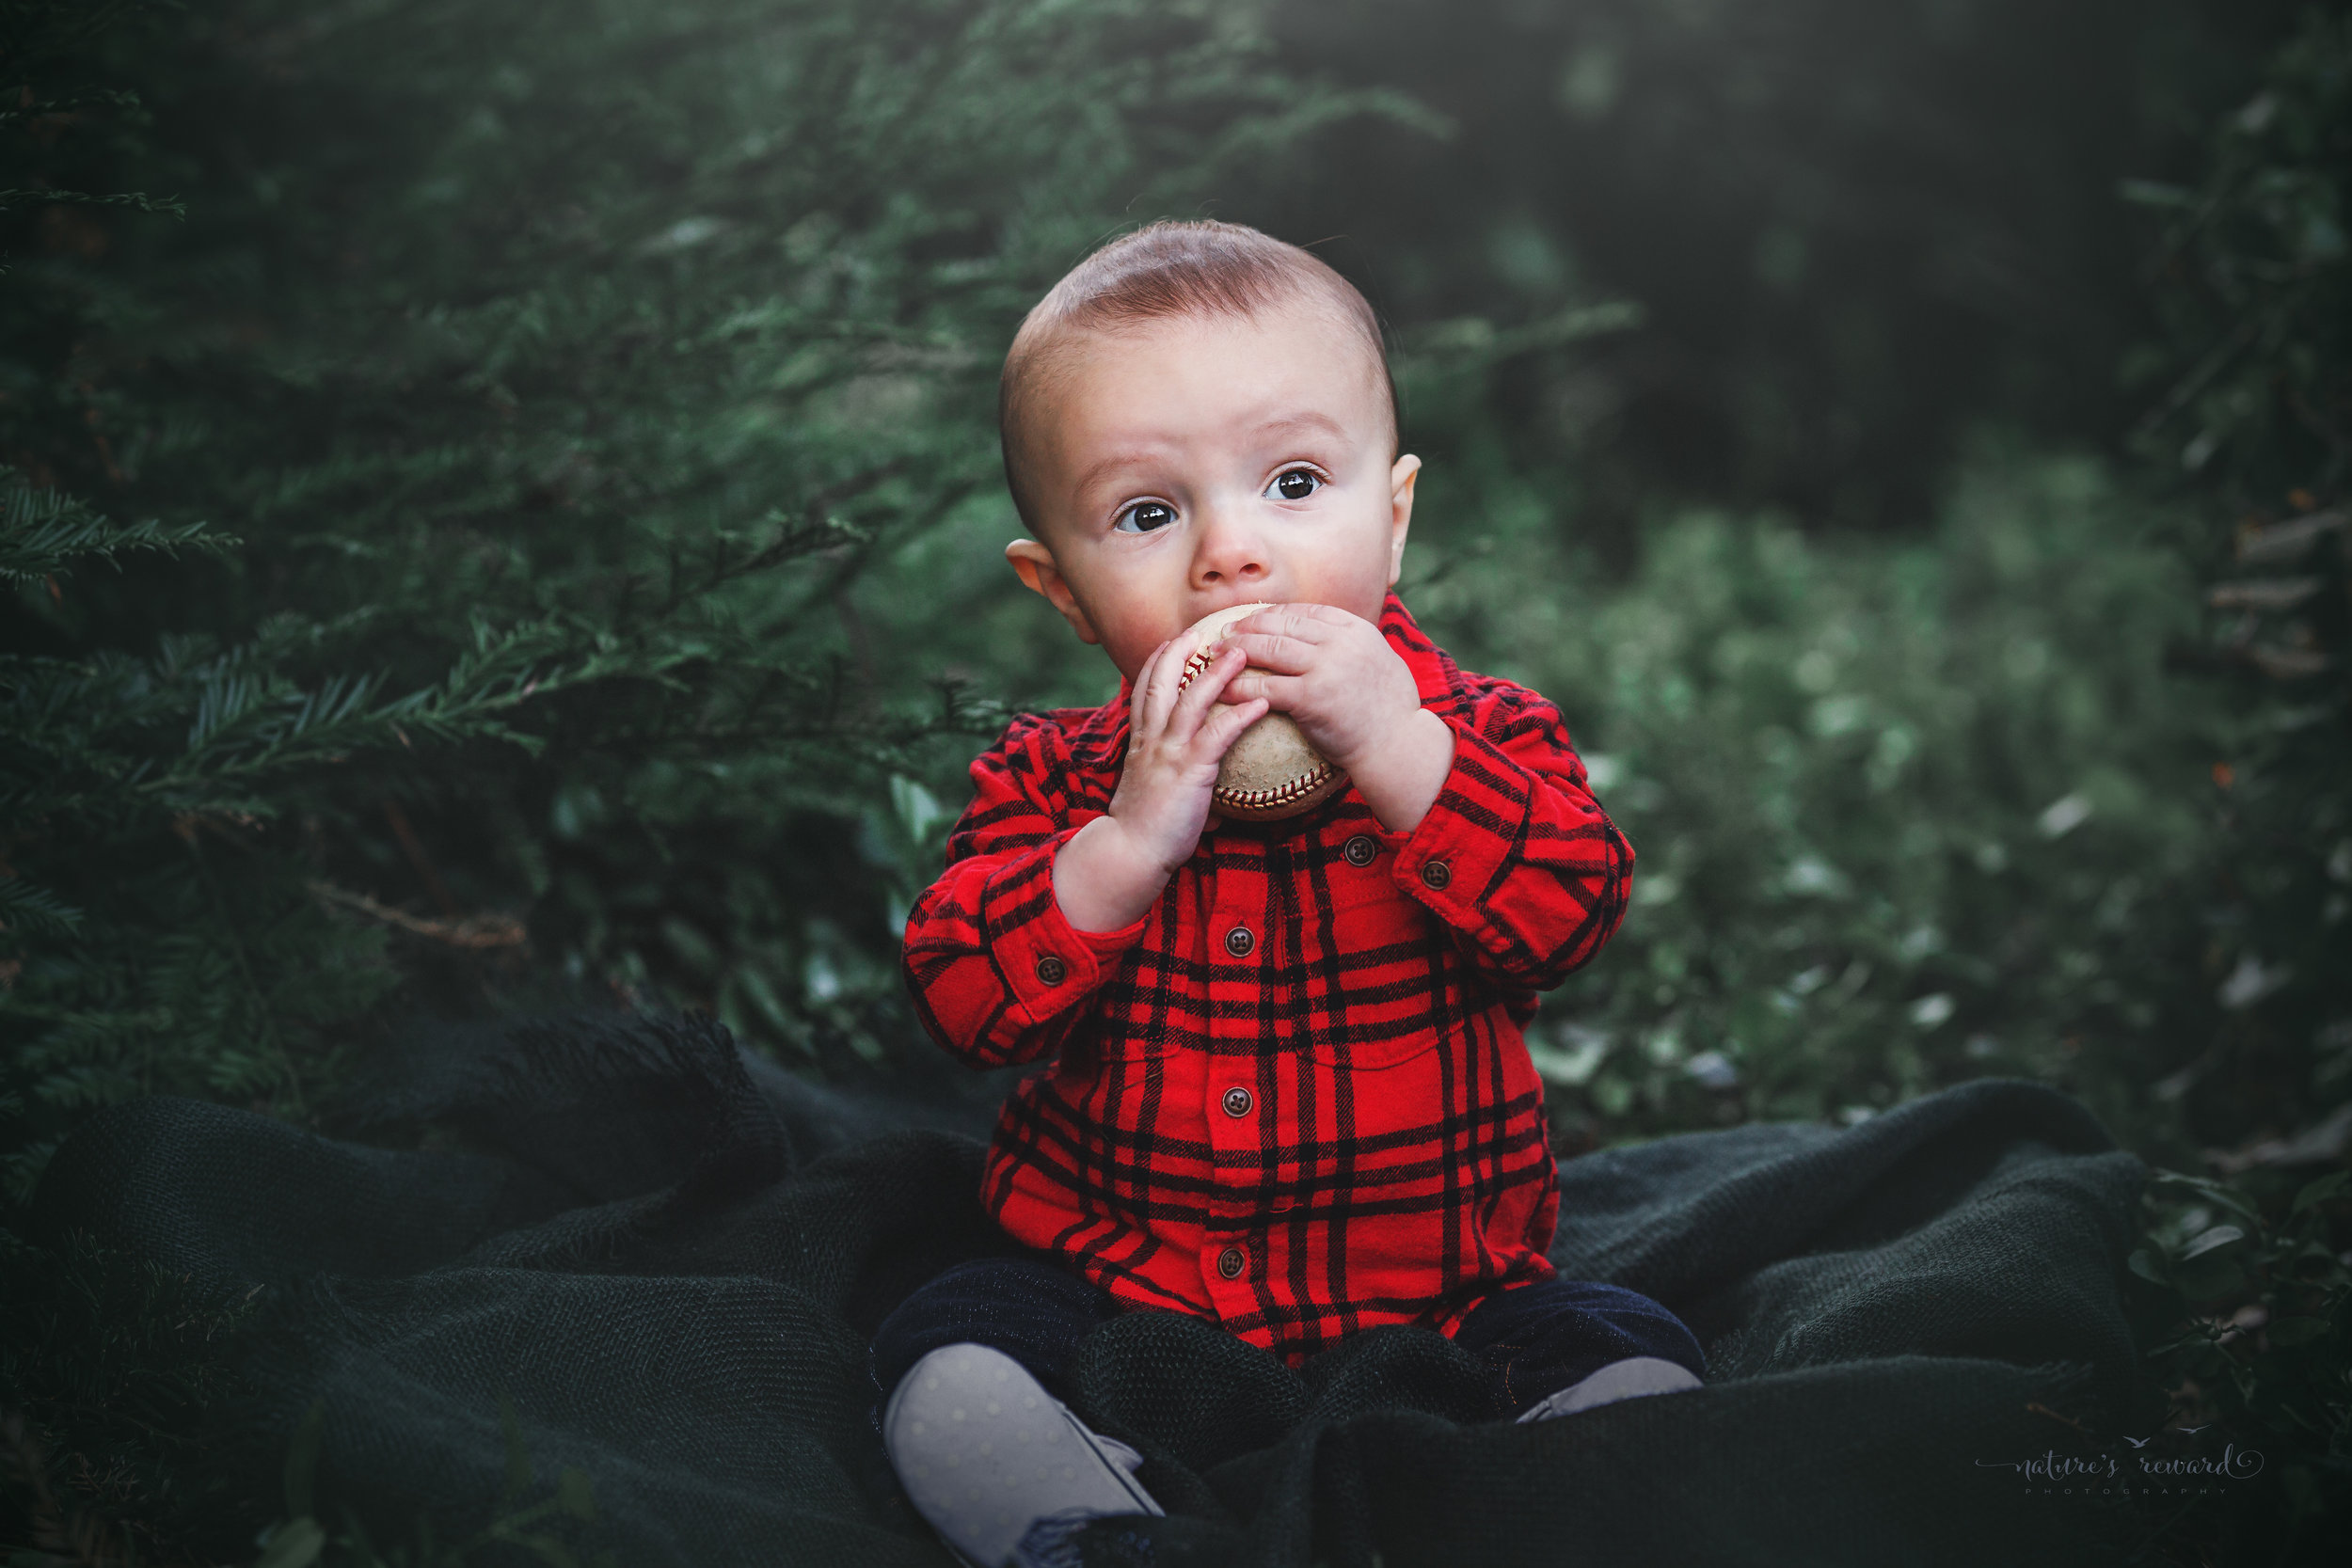 6 month old baby boy and his baseball in a lush green park setting in Redlands, Ca. by San Bernardino photographer- Nature's Reward Photography